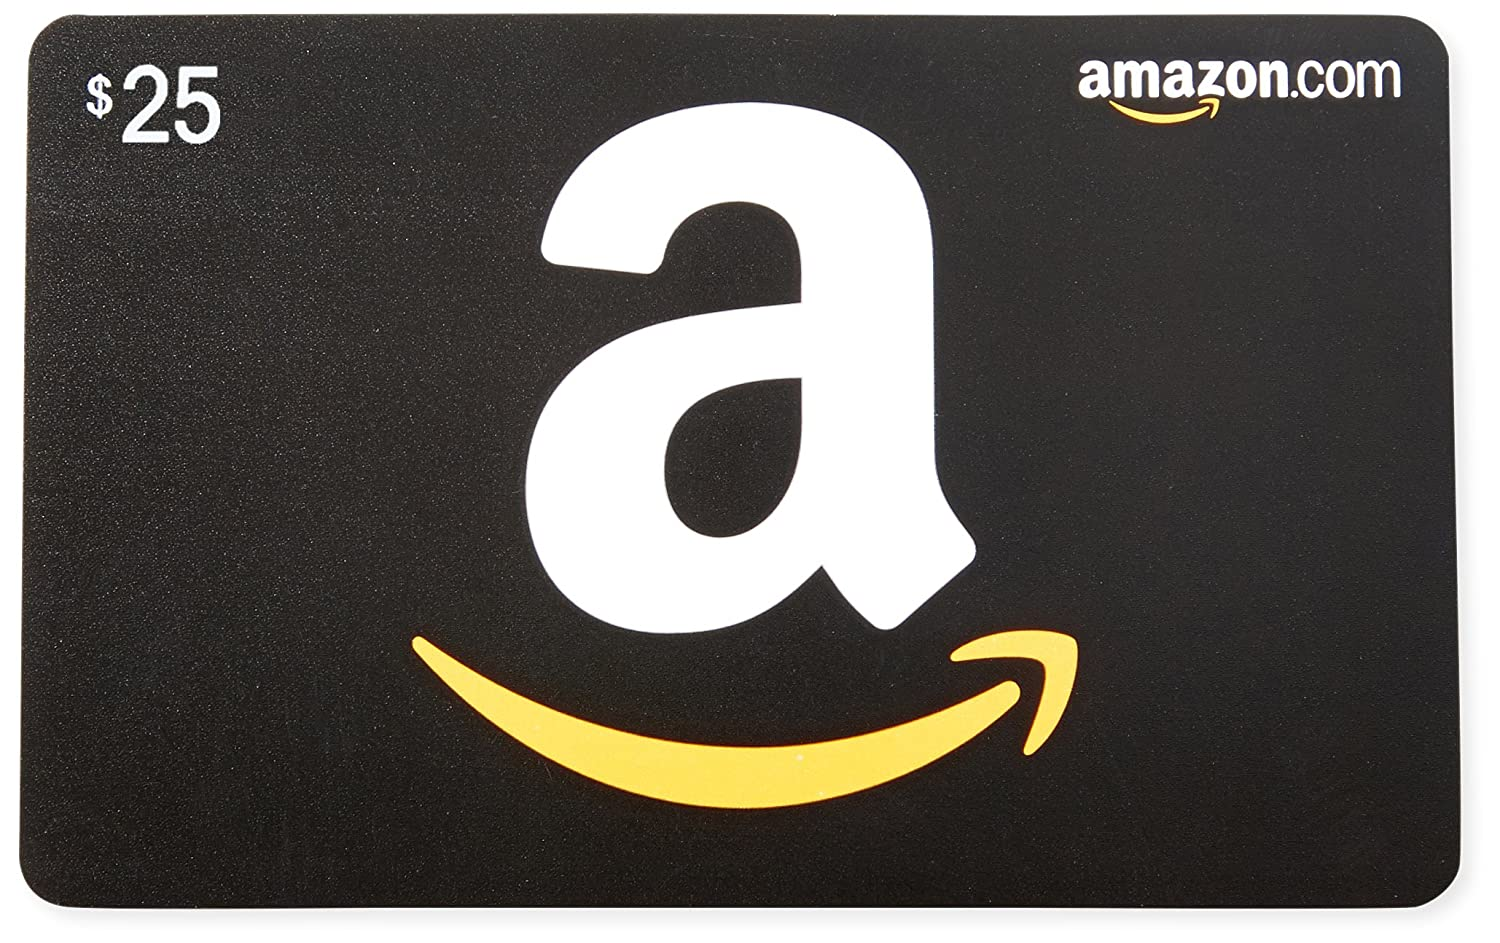 Amazon amazon 25 gift card in a easter egg reveal classic amazon amazon 25 gift card in a easter egg reveal classic black card design gift cards negle Choice Image